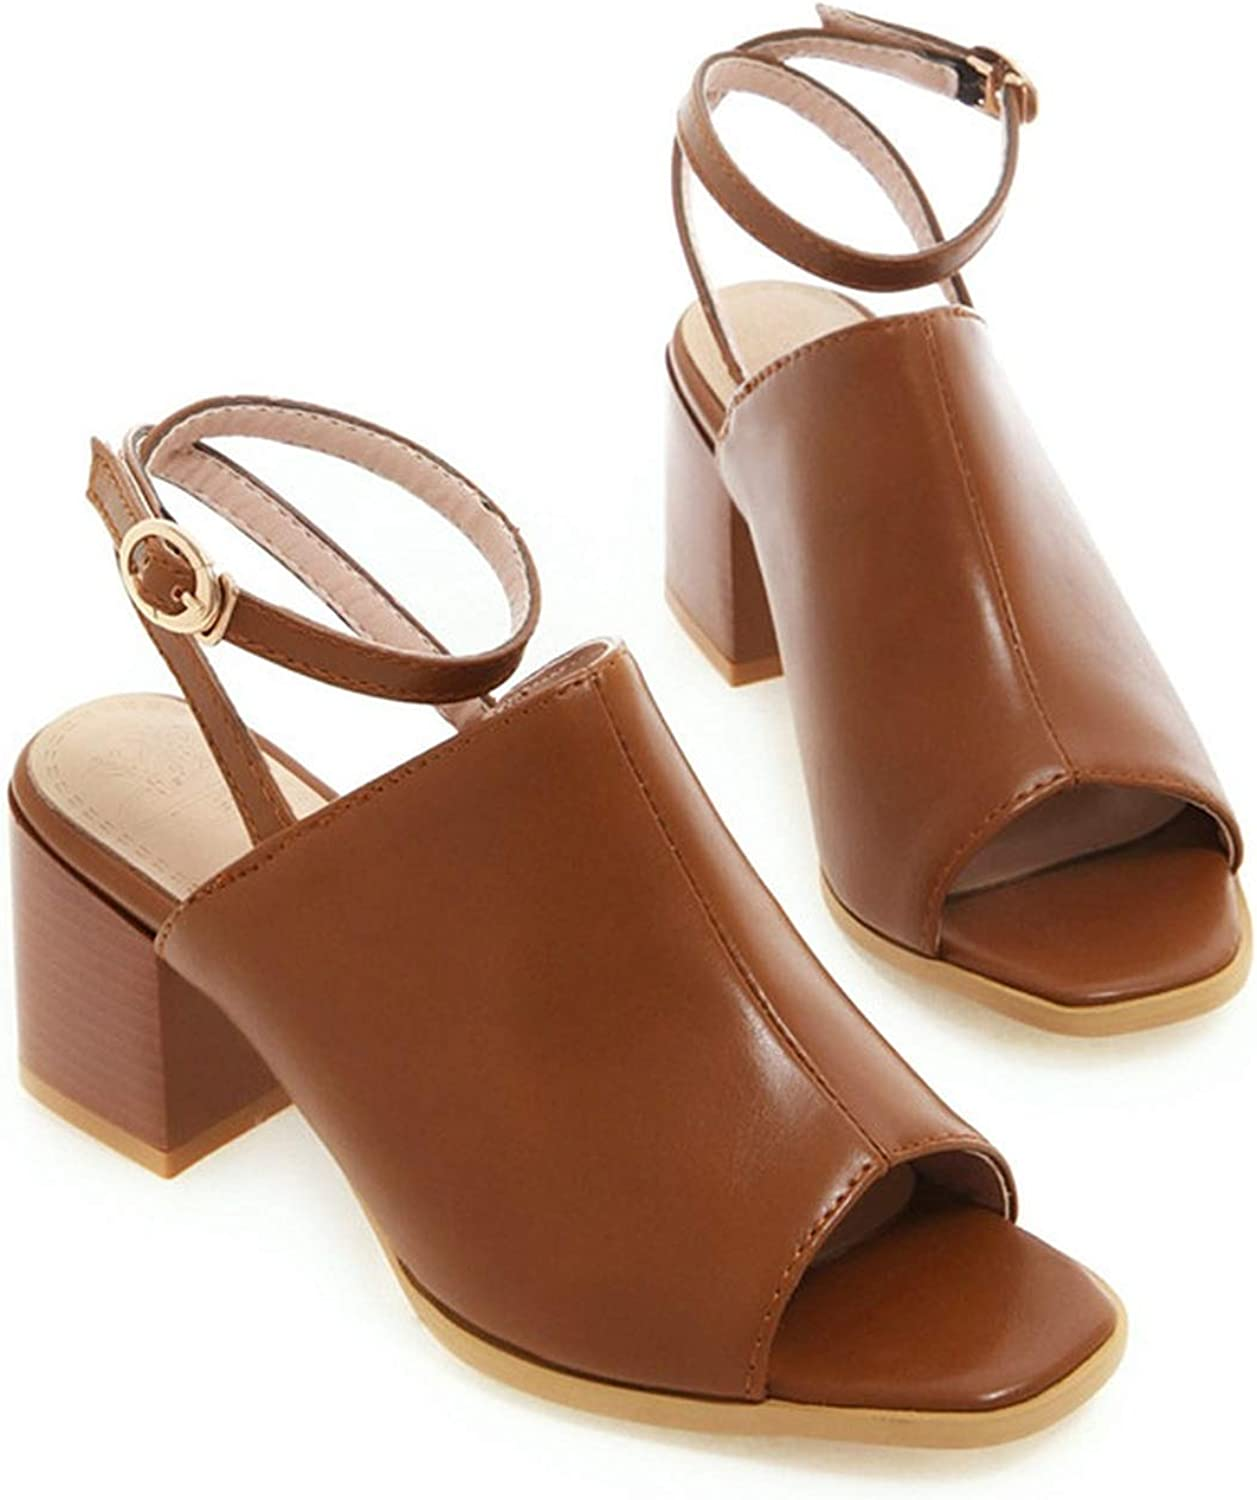 Summer shoes Woman Buckle Square high Heels shoes Women Casual Sandals Women